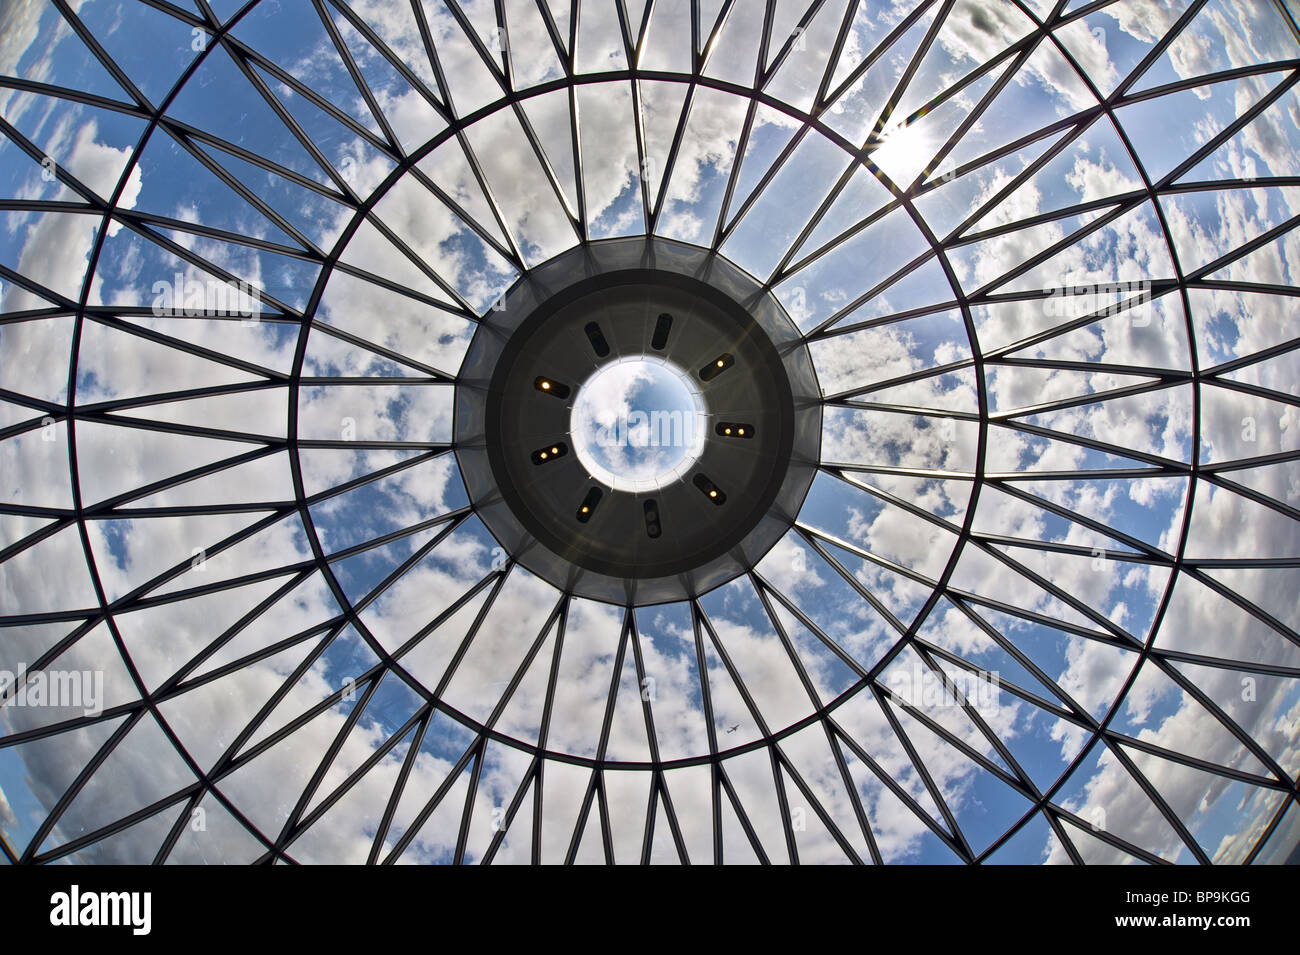 Looking at the sky through the dome of a skyscraper -- the proverbial glass ceiling? - Stock Image